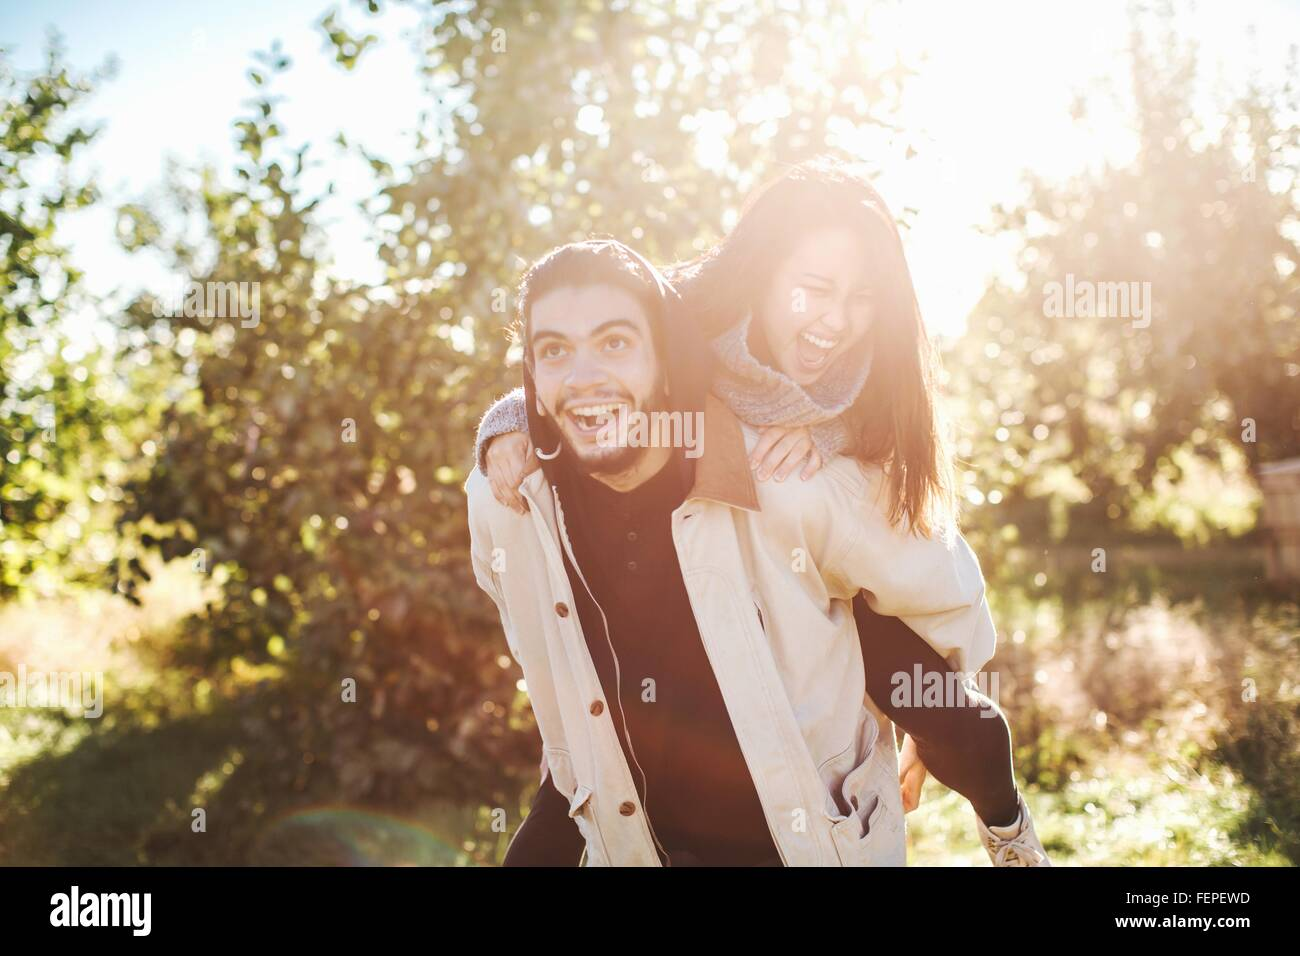 Young man giving young woman piggyback ride, outdoors - Stock Image